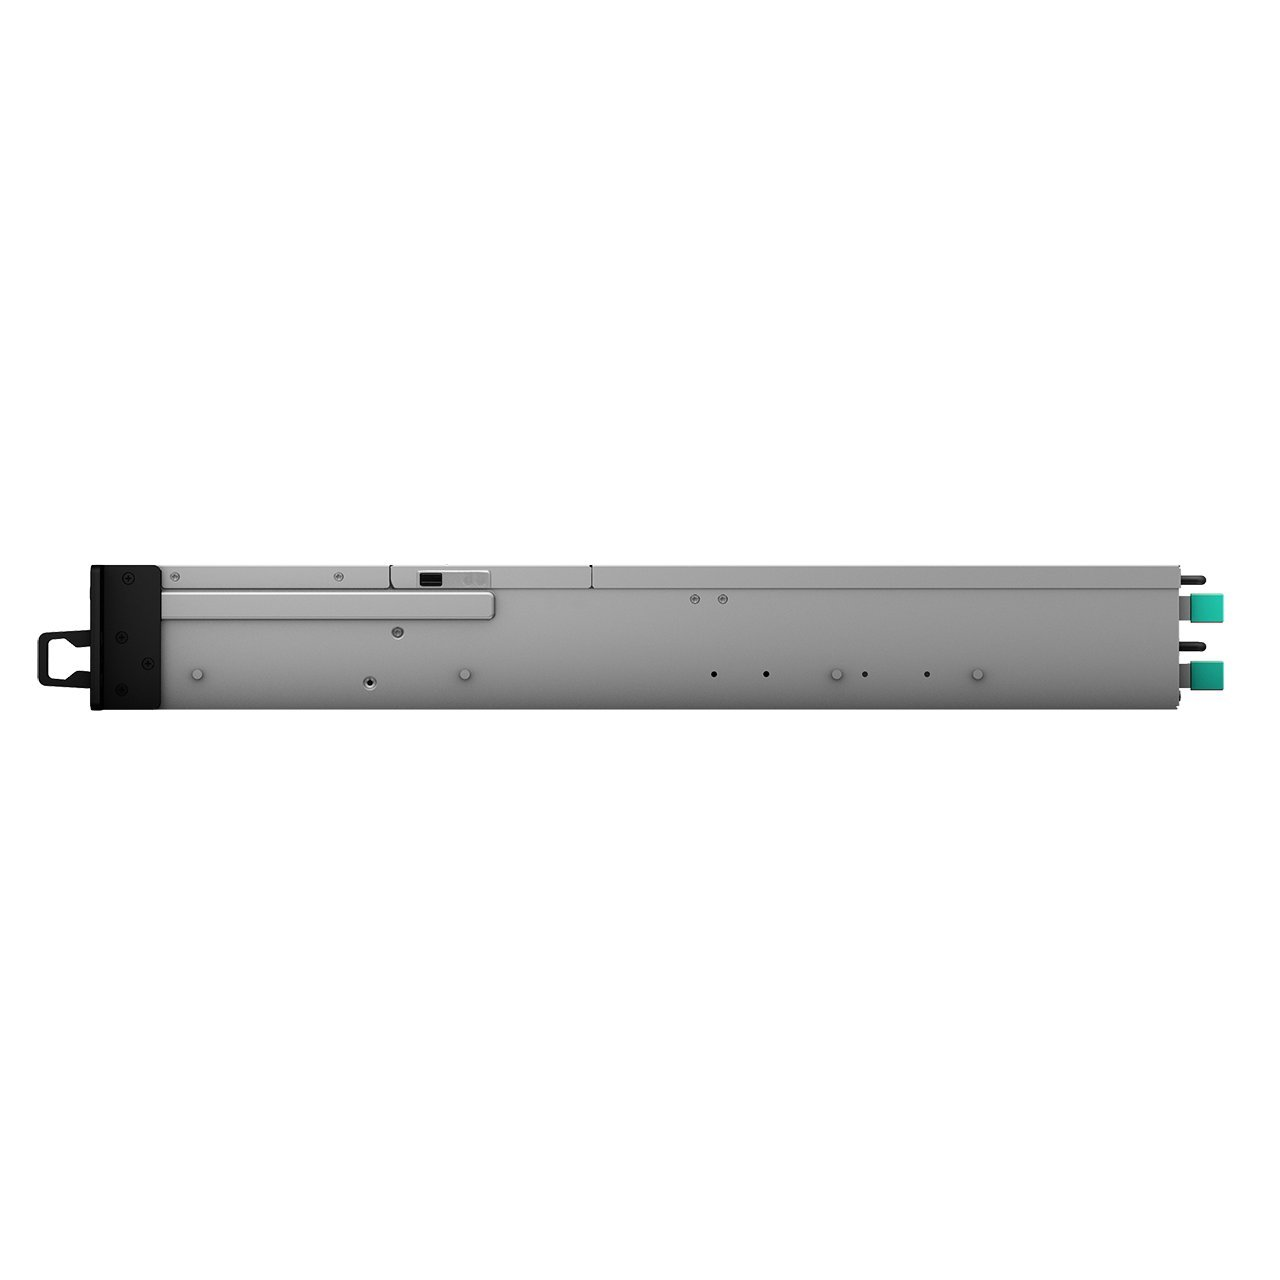 Synology High-Availability 12-Bay Rack Mount Expansion Unit (RX1216sas) by Synology (Image #3)